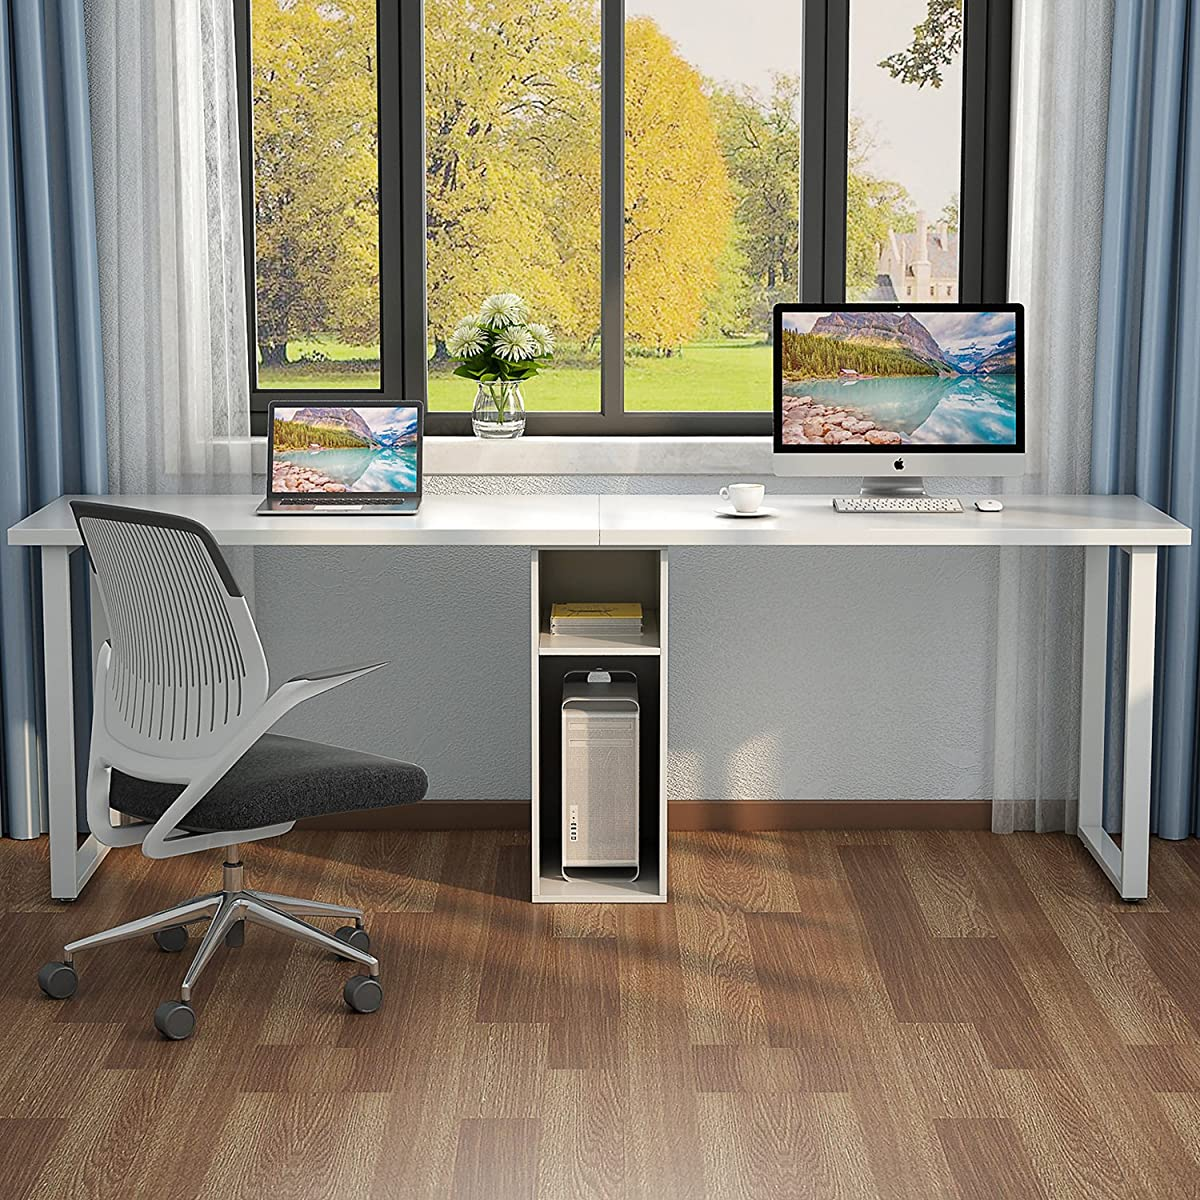 "Little Tree 78"" Extra Large Double Workstation Computer Desk for Two Person, Simple Modern Style Office Desk with Storage (White Finish)"